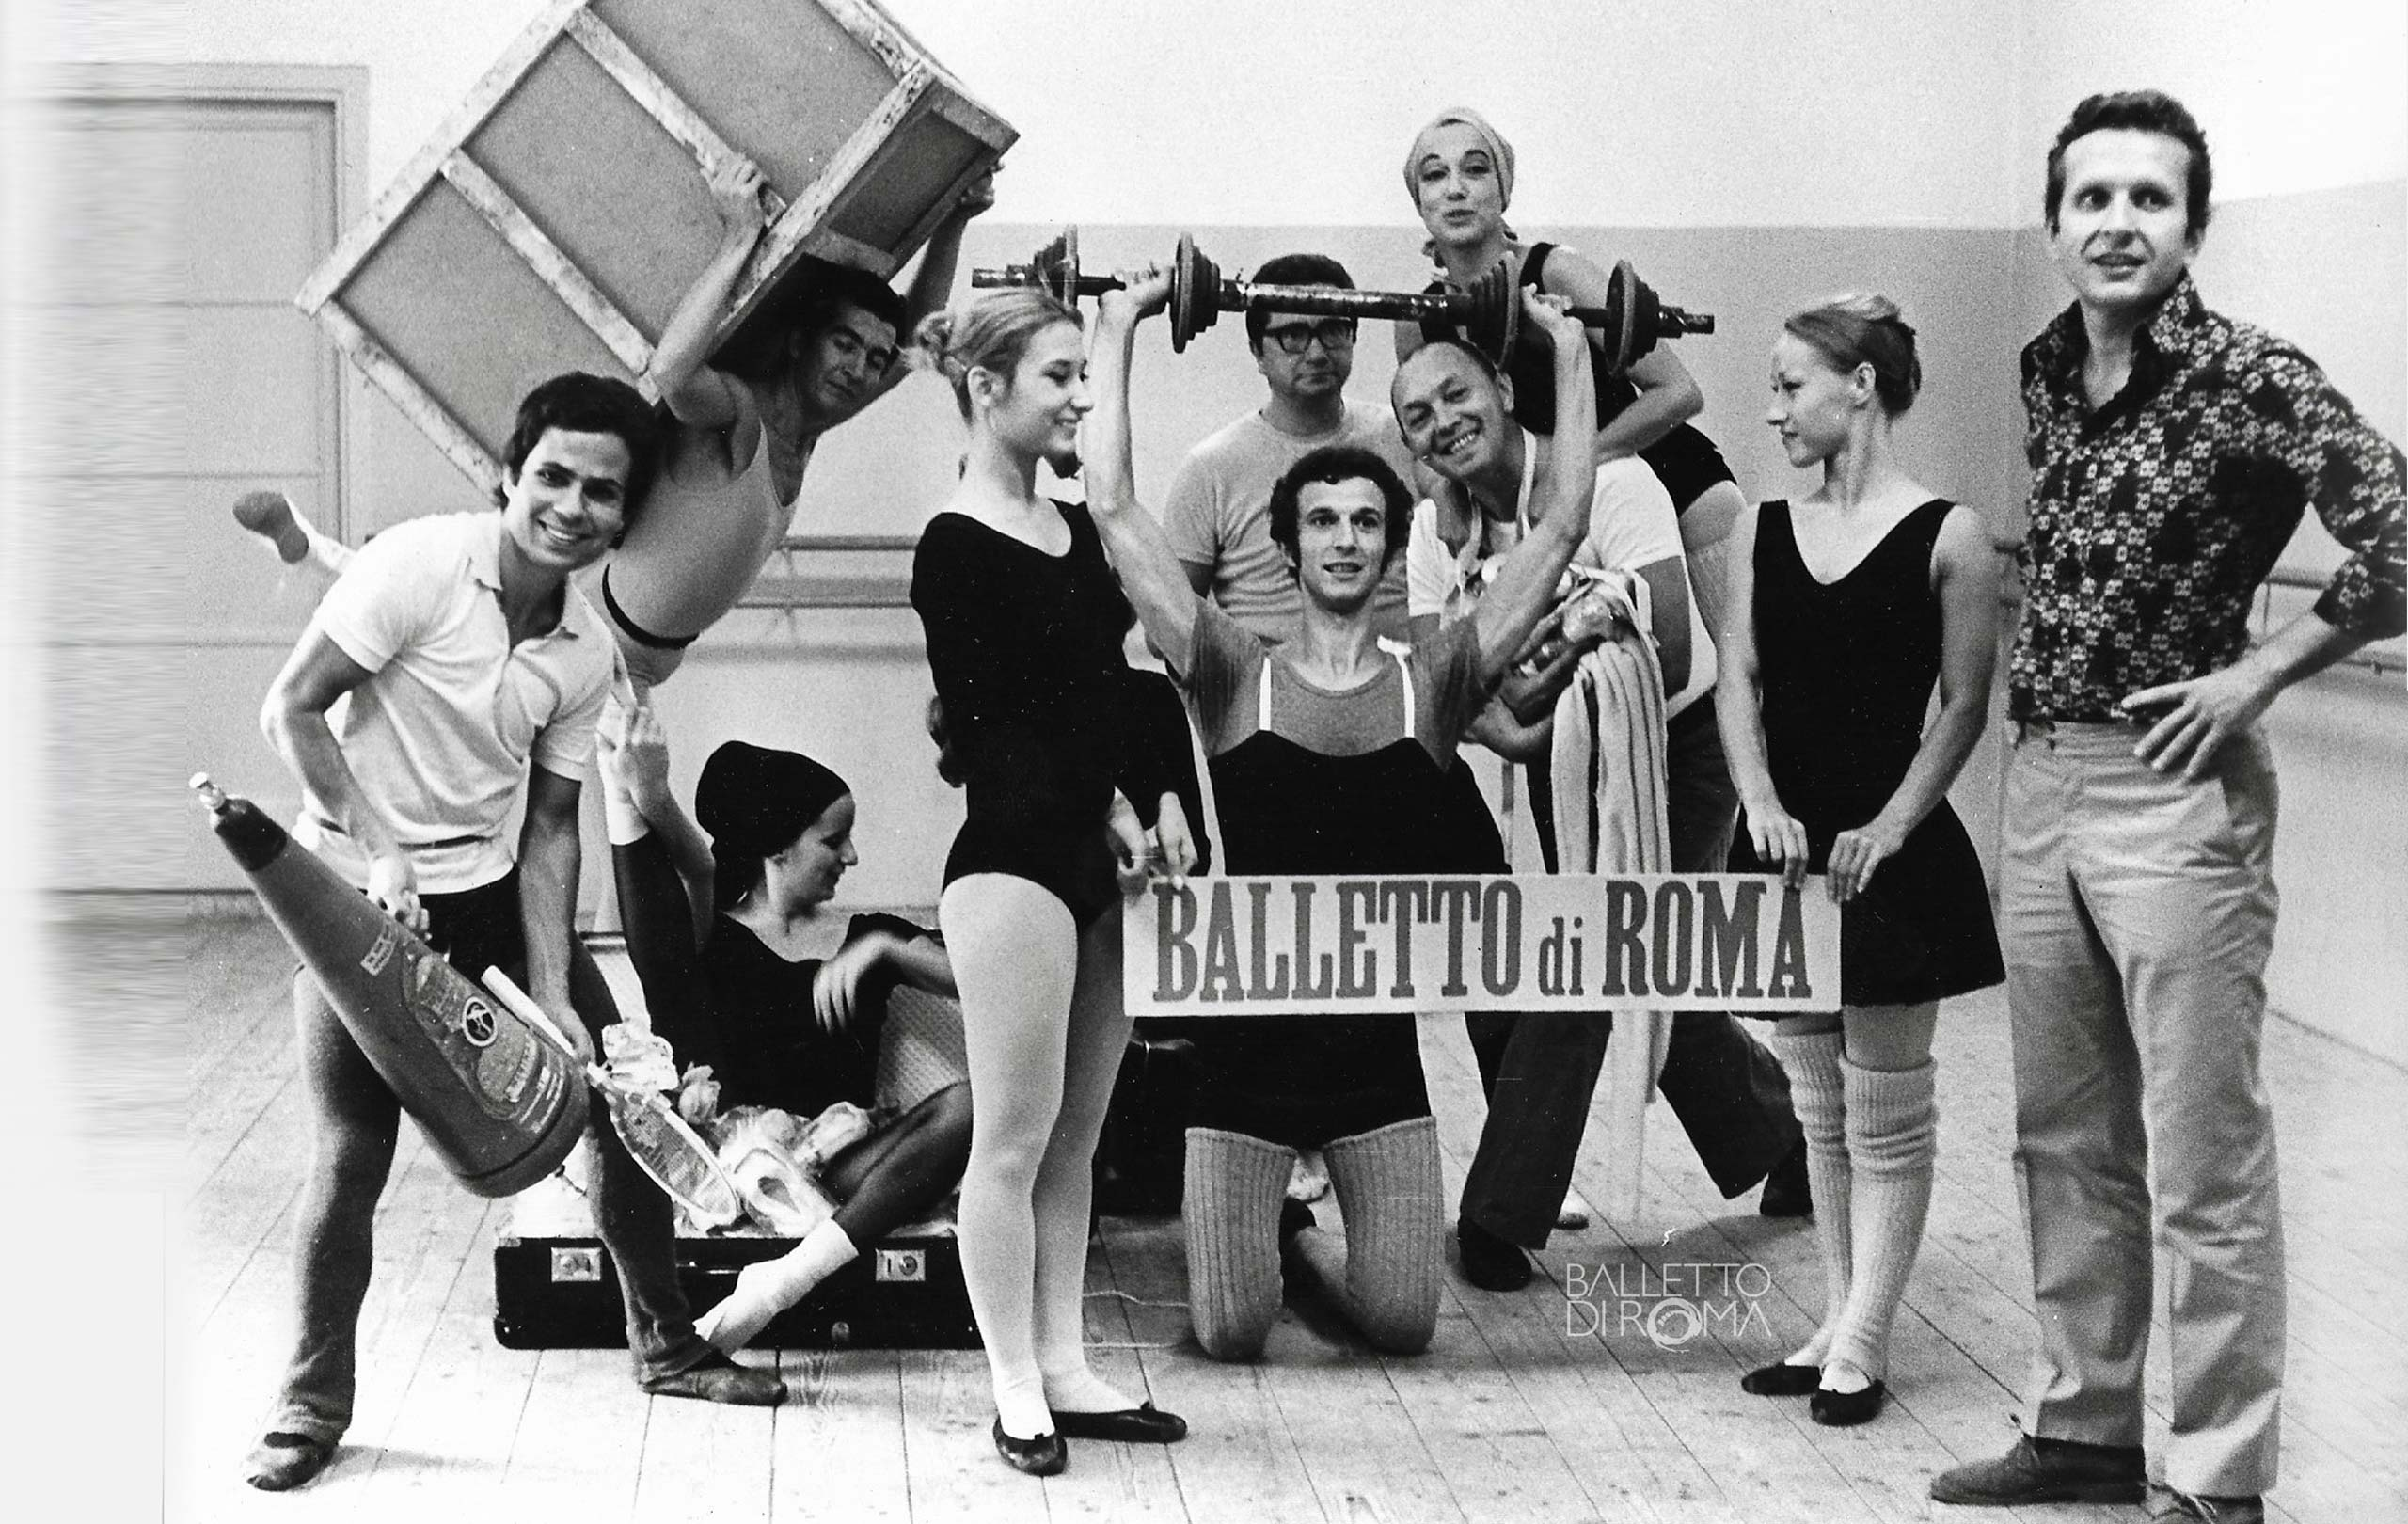 Balletto di Roma turns 60 years